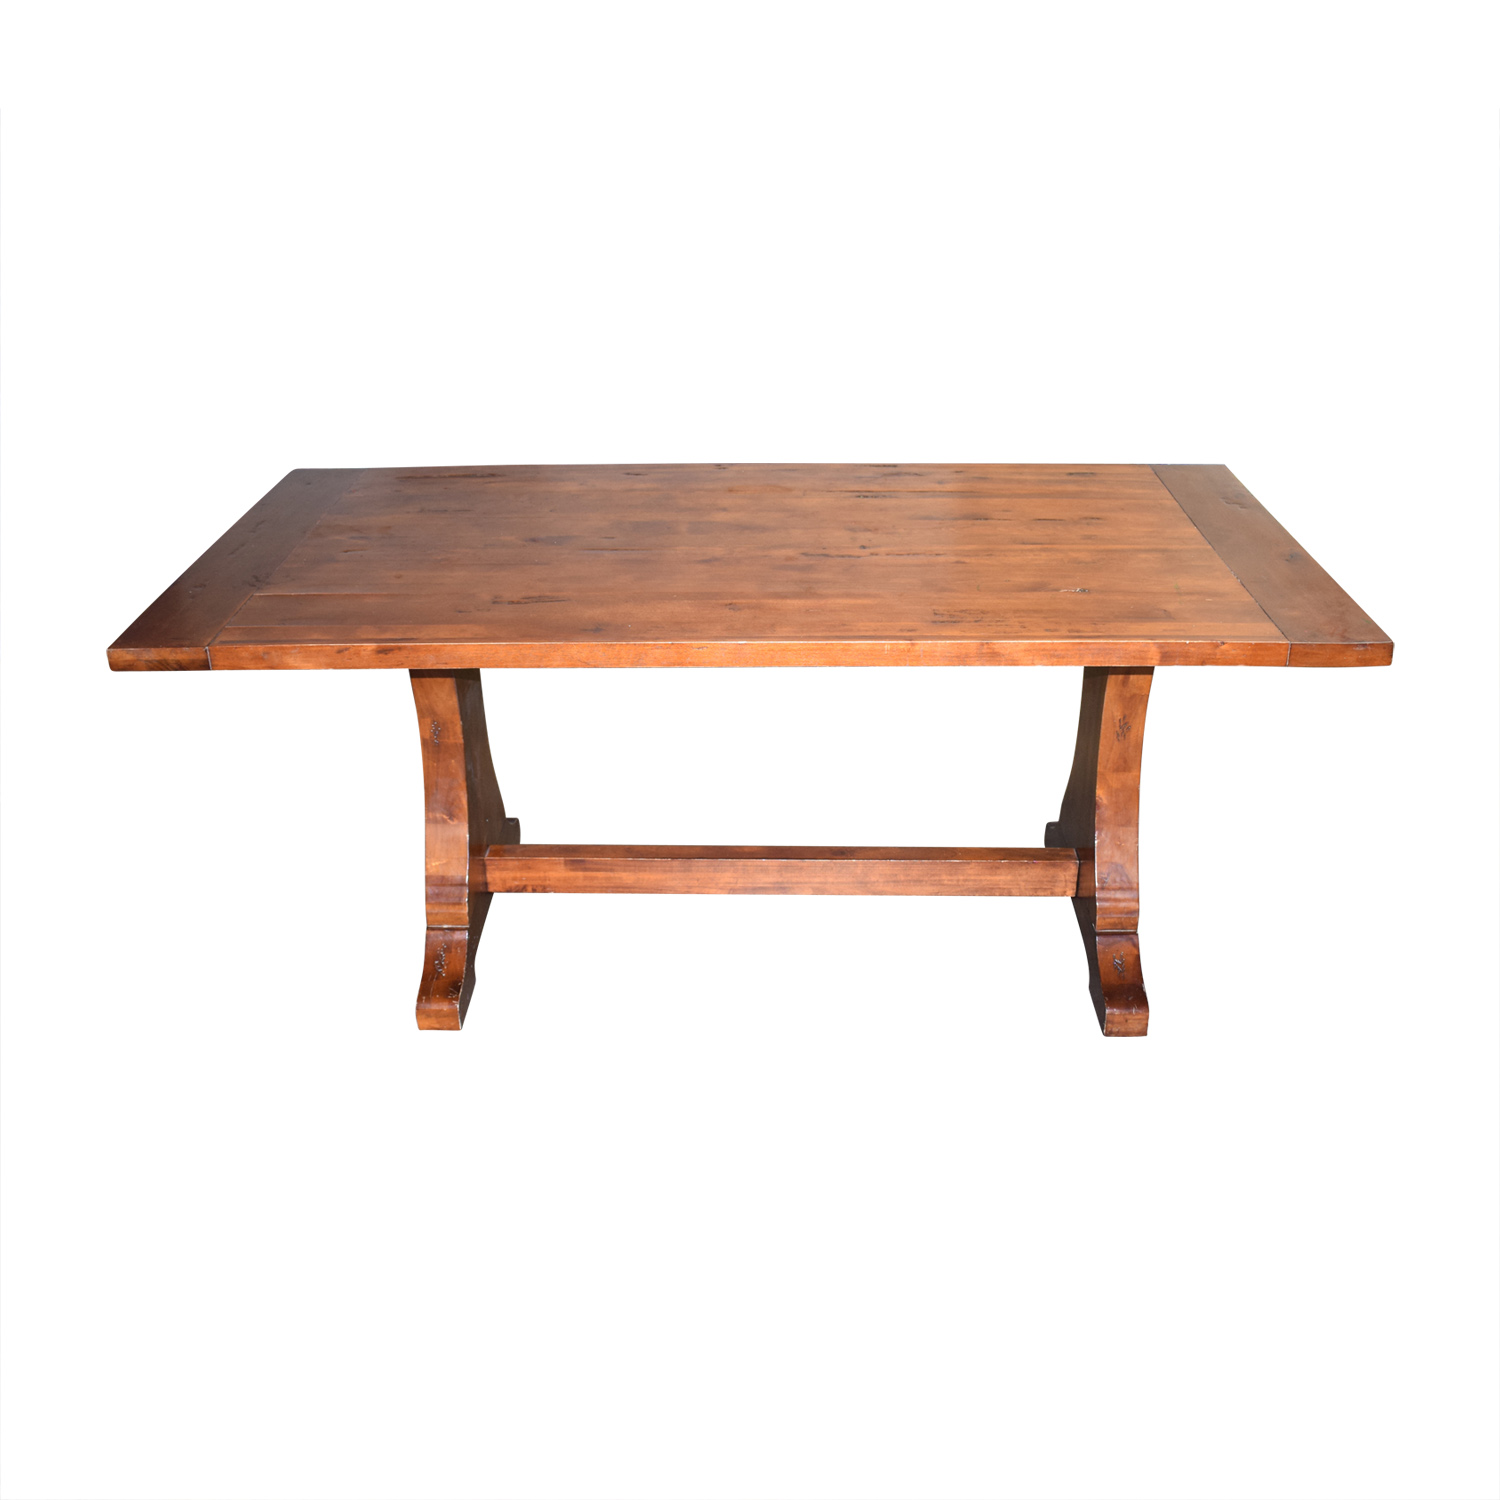 ... Shop Ballard Designs Solid Walnut Dining Table Ballard Designs Dinner  Tables ...